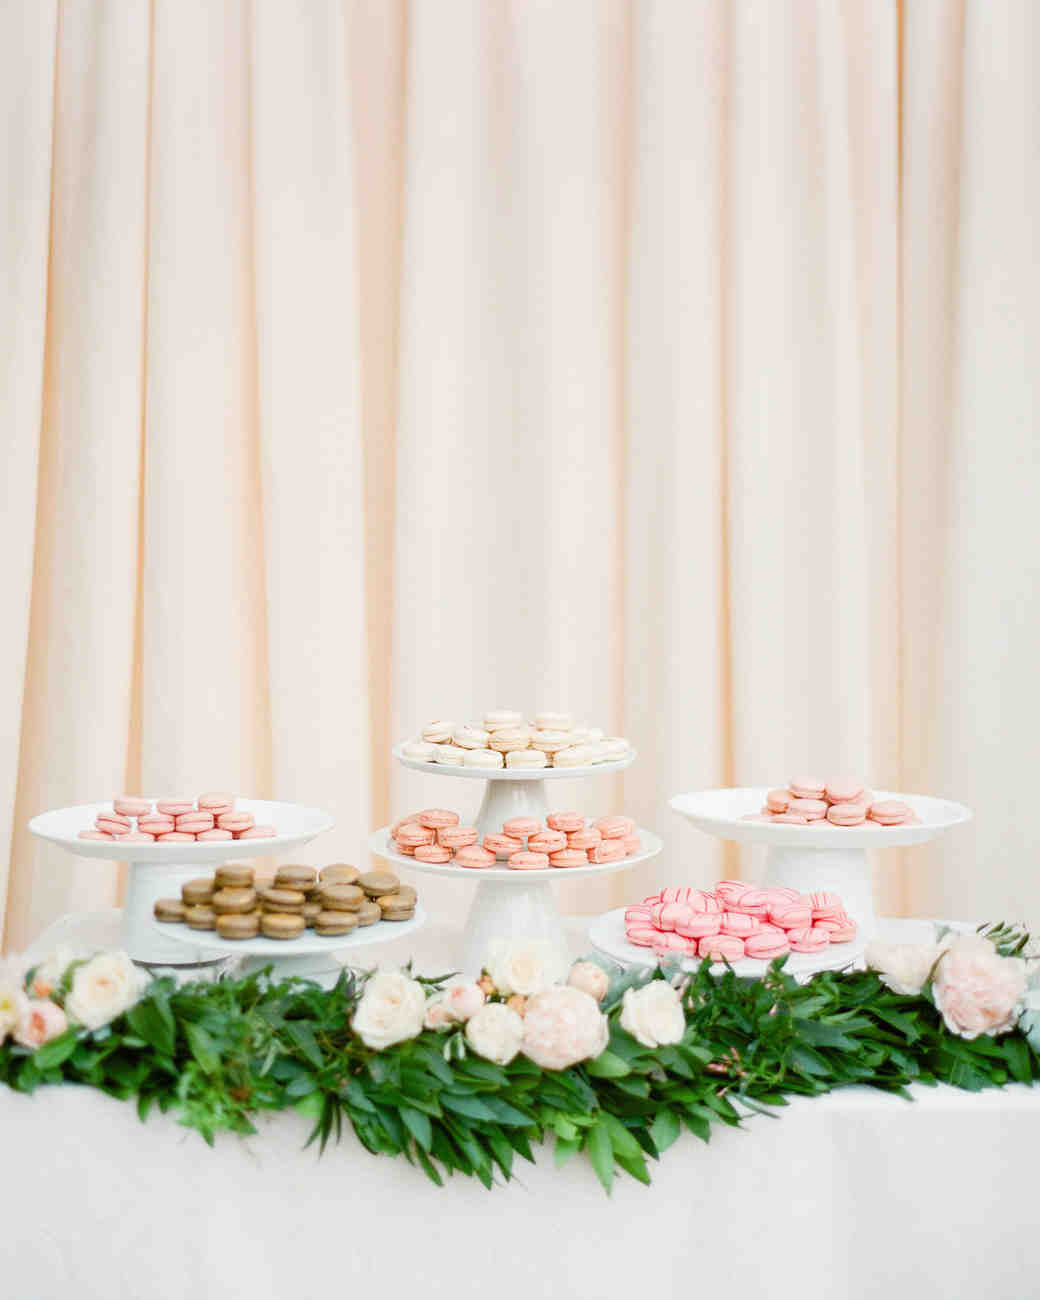 30 Dessert Ideas for Your Bridal Shower | Martha Stewart Weddings